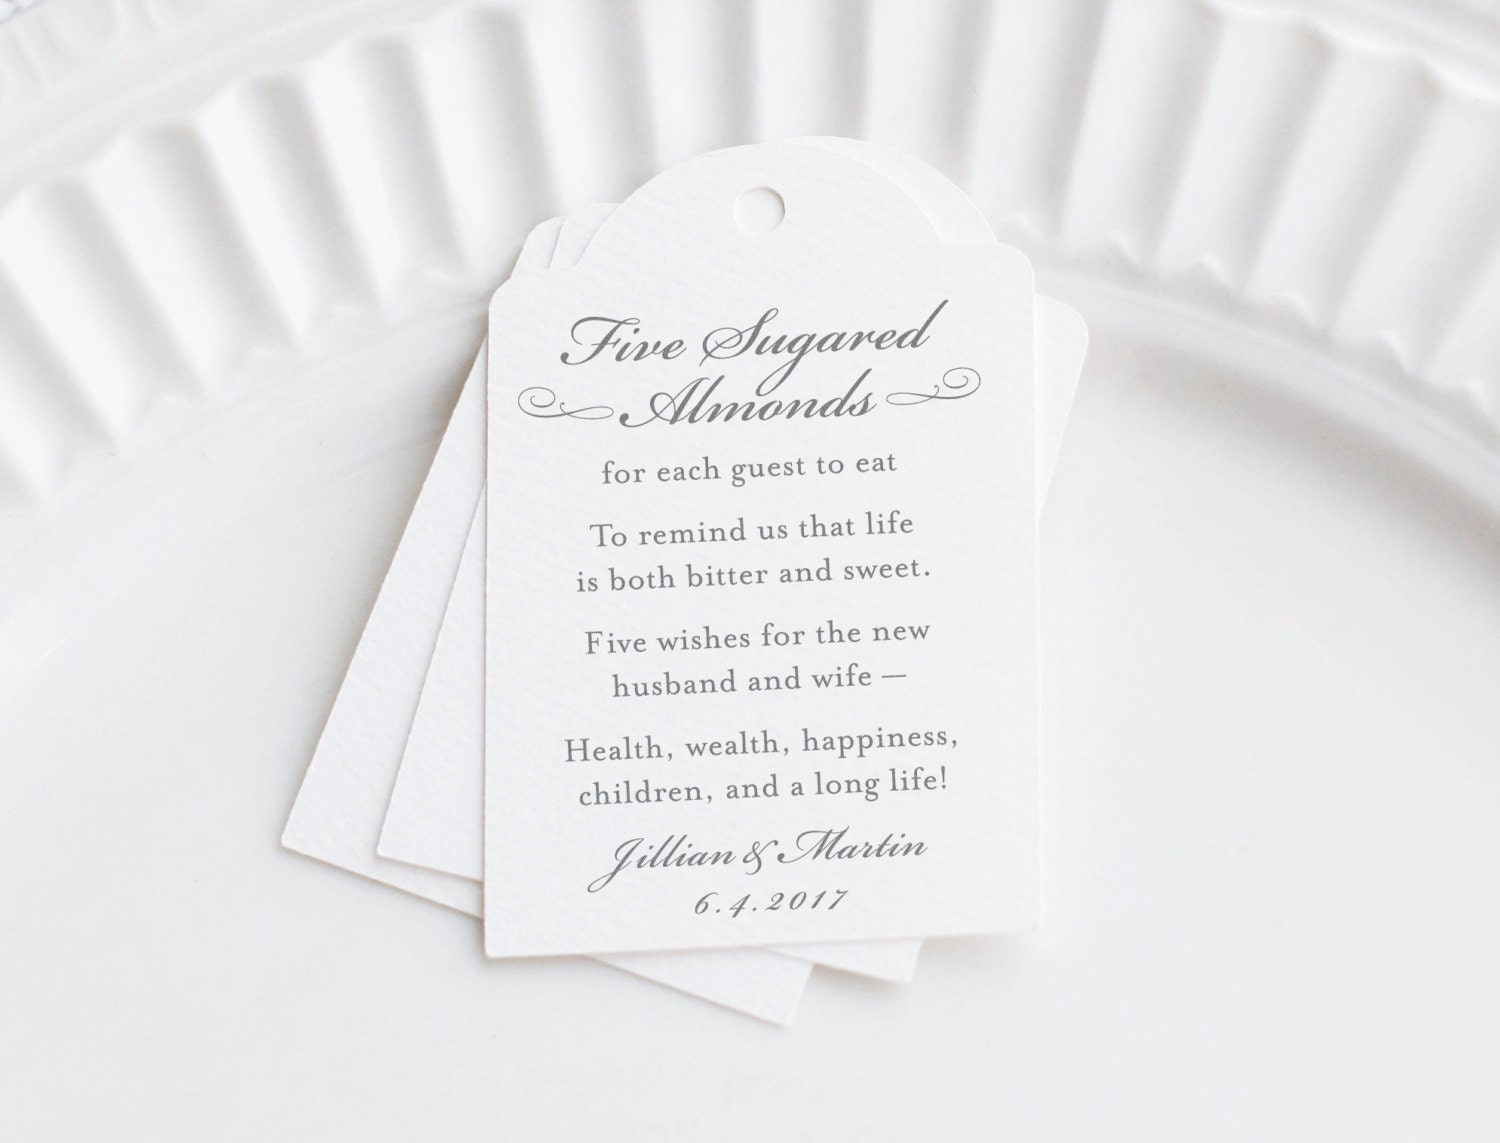 Almond Wedding Favor Tag Personalized Gift Tags Five Sugared